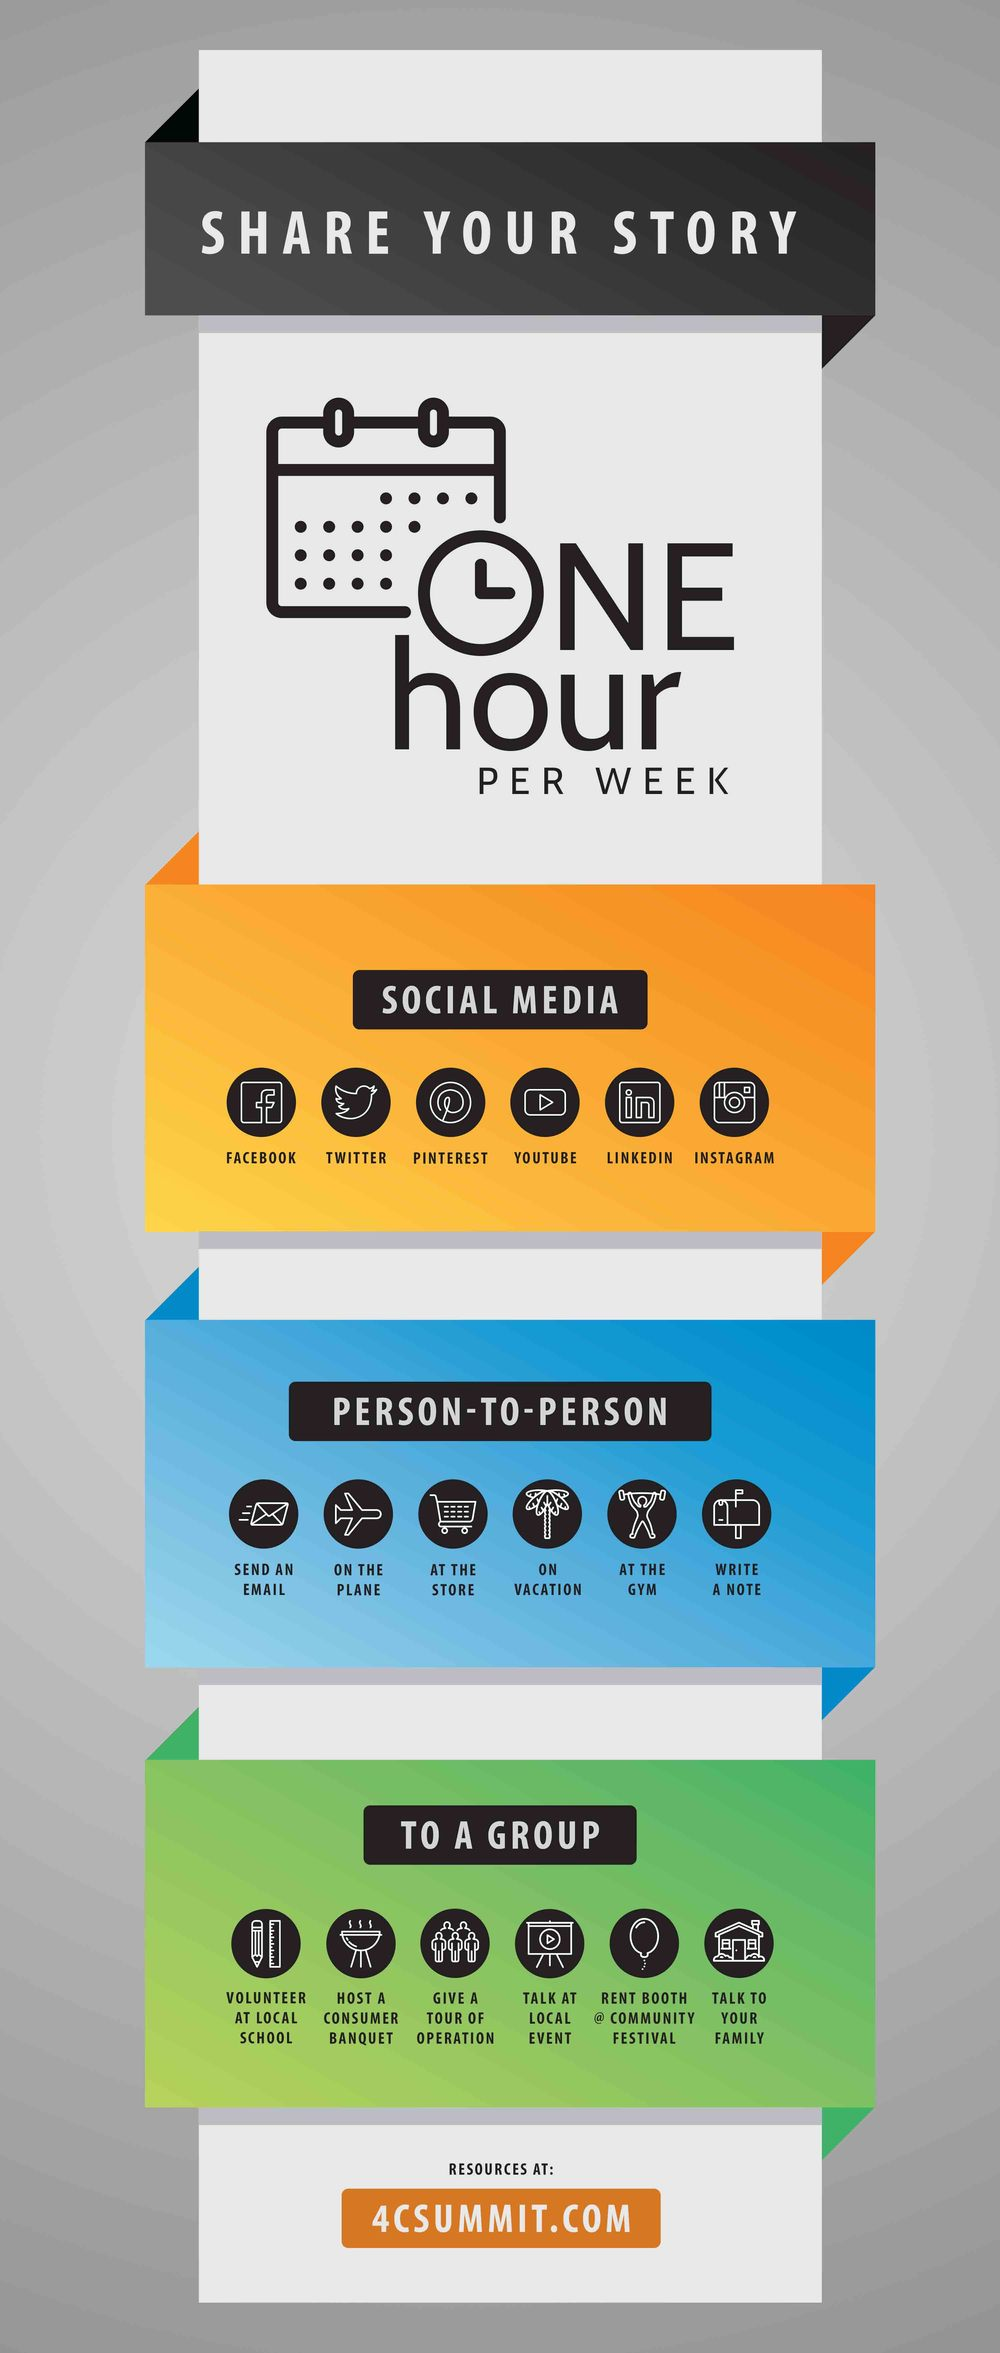 One Hour Per Week by Erin Ehnle